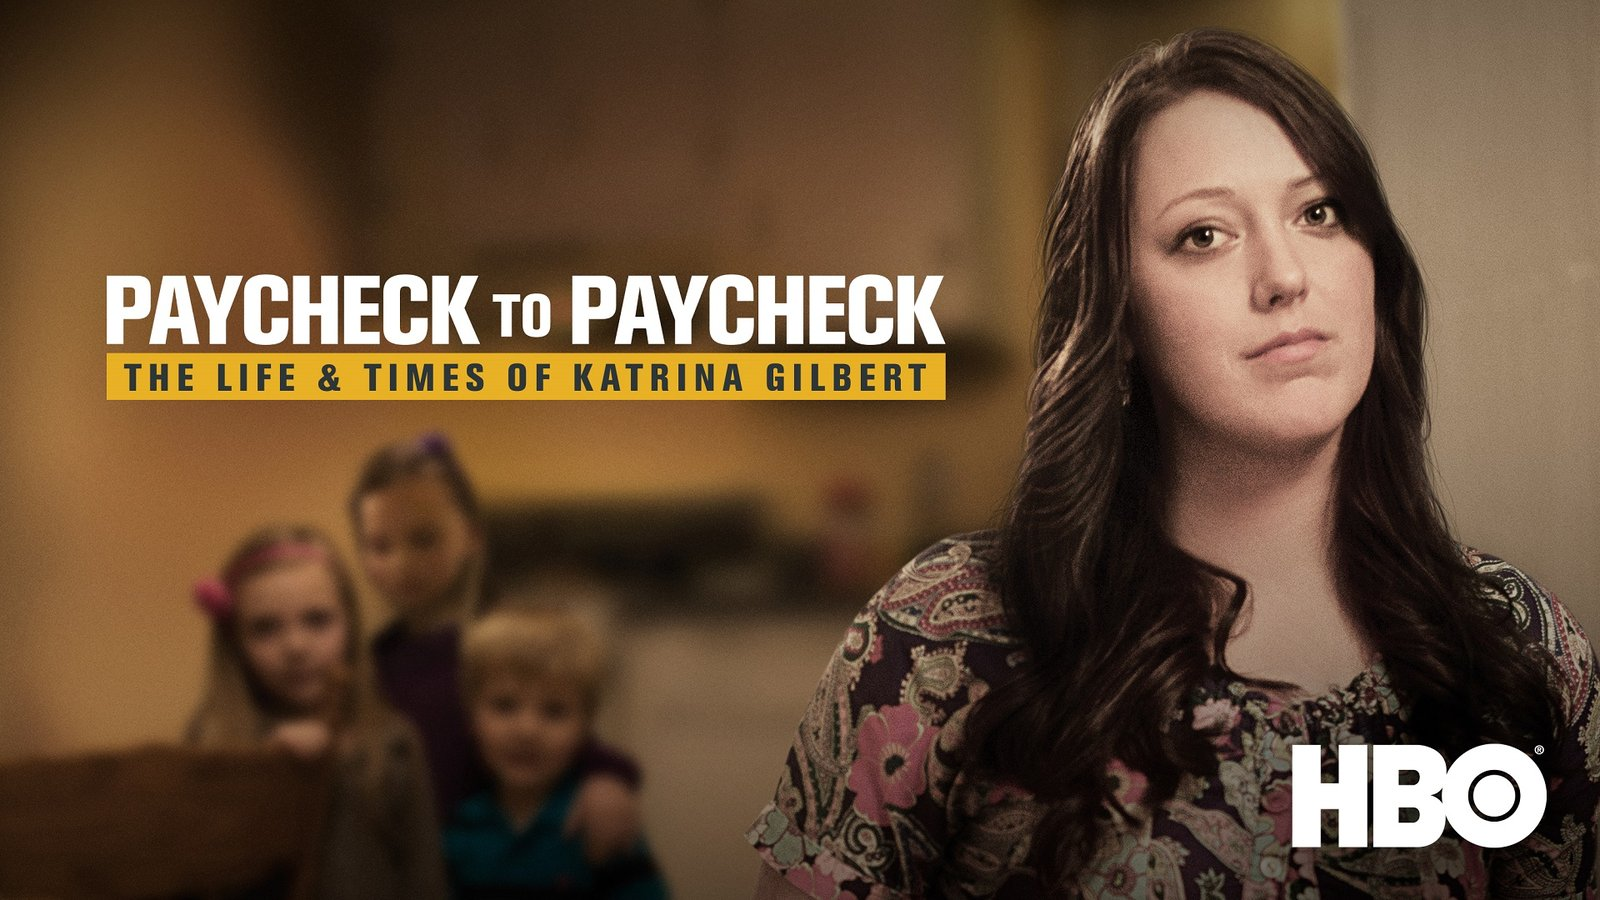 Paycheck to Paycheck - The Life & Times of Katrina Gilbert